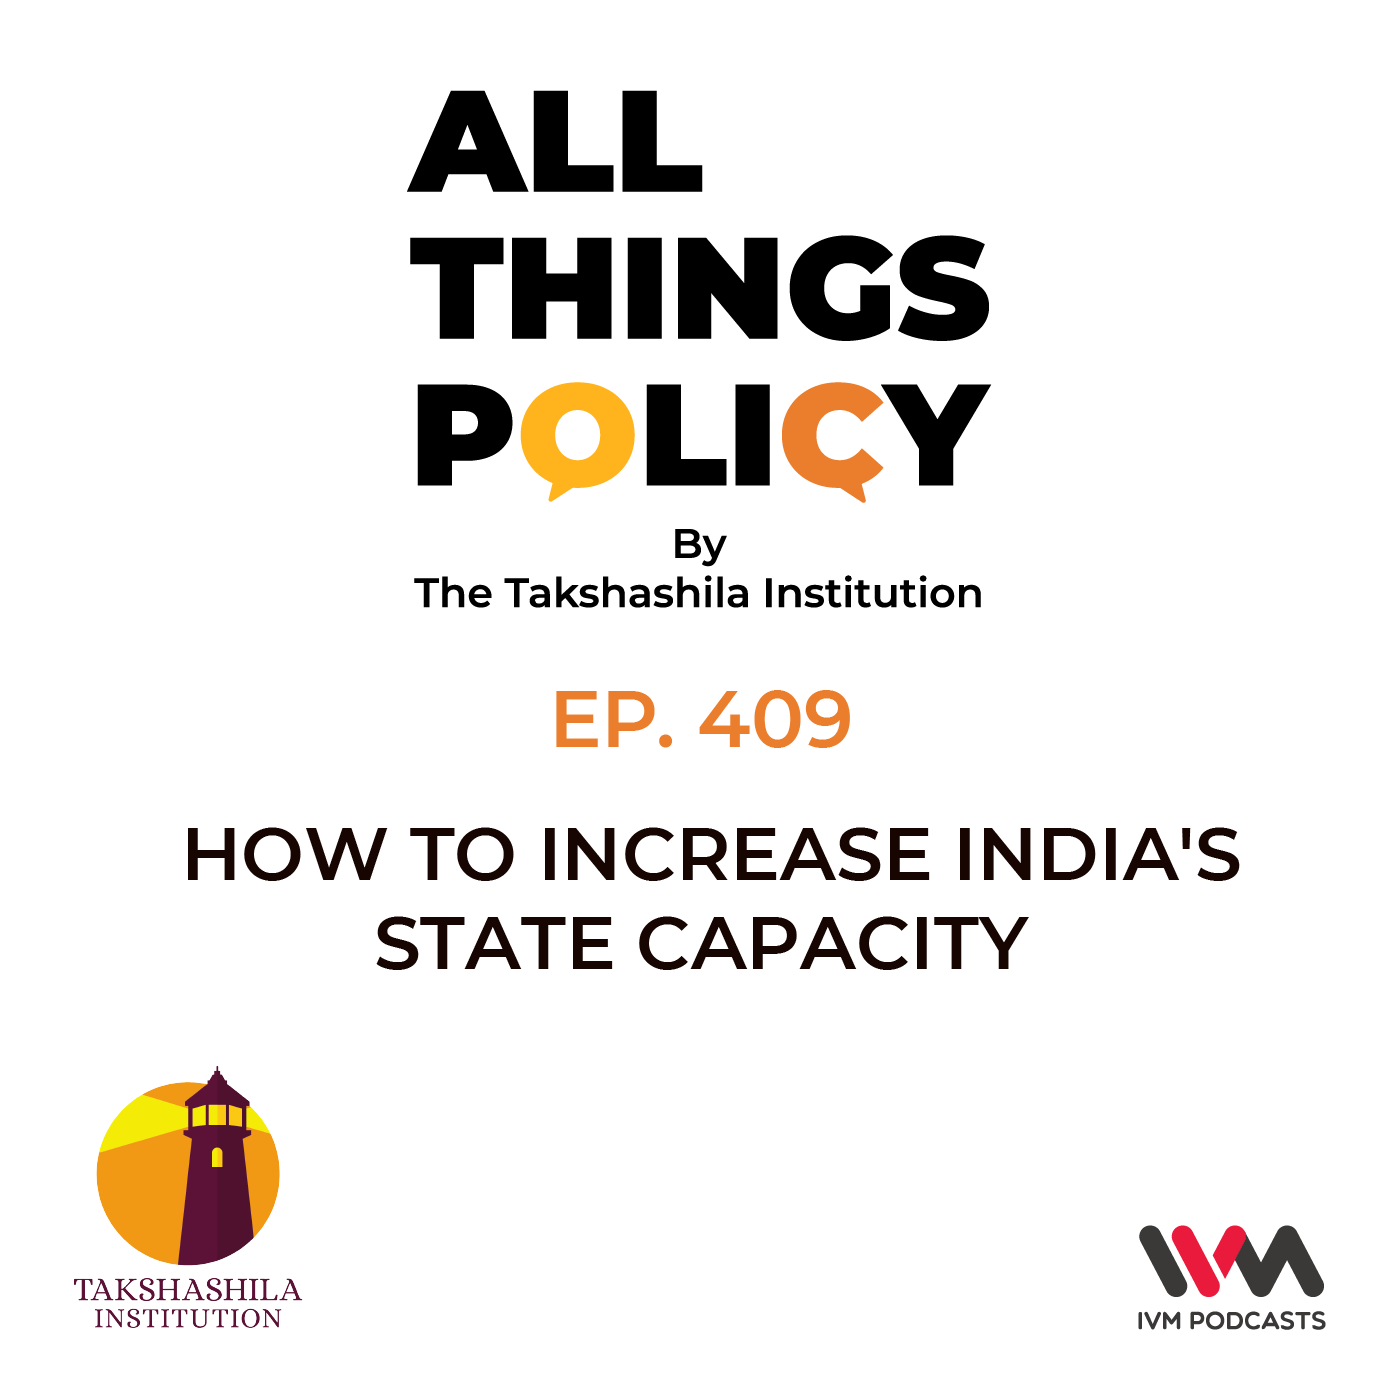 Ep. 409: How to Increase India's State Capacity